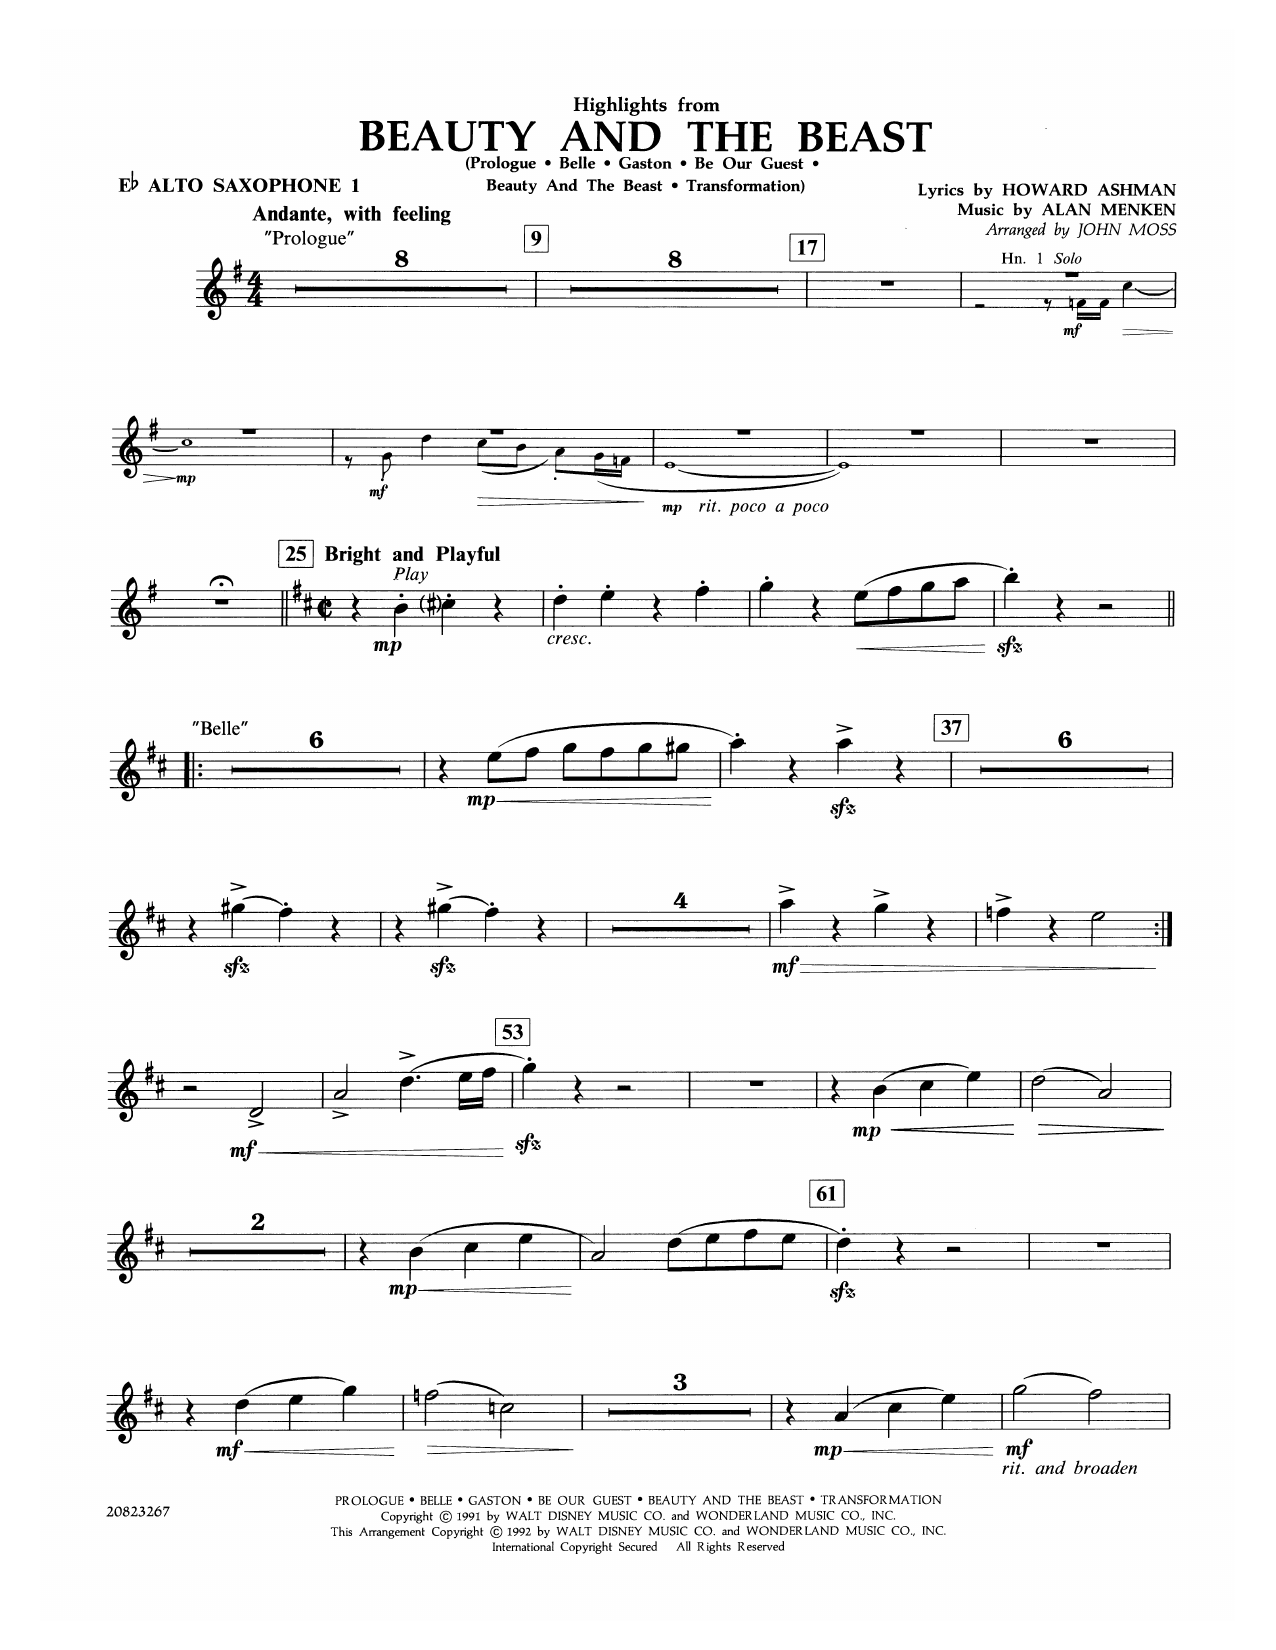 John Moss Highlights from Beauty and the Beast - Eb Alto Saxophone 1 sheet music notes and chords. Download Printable PDF.